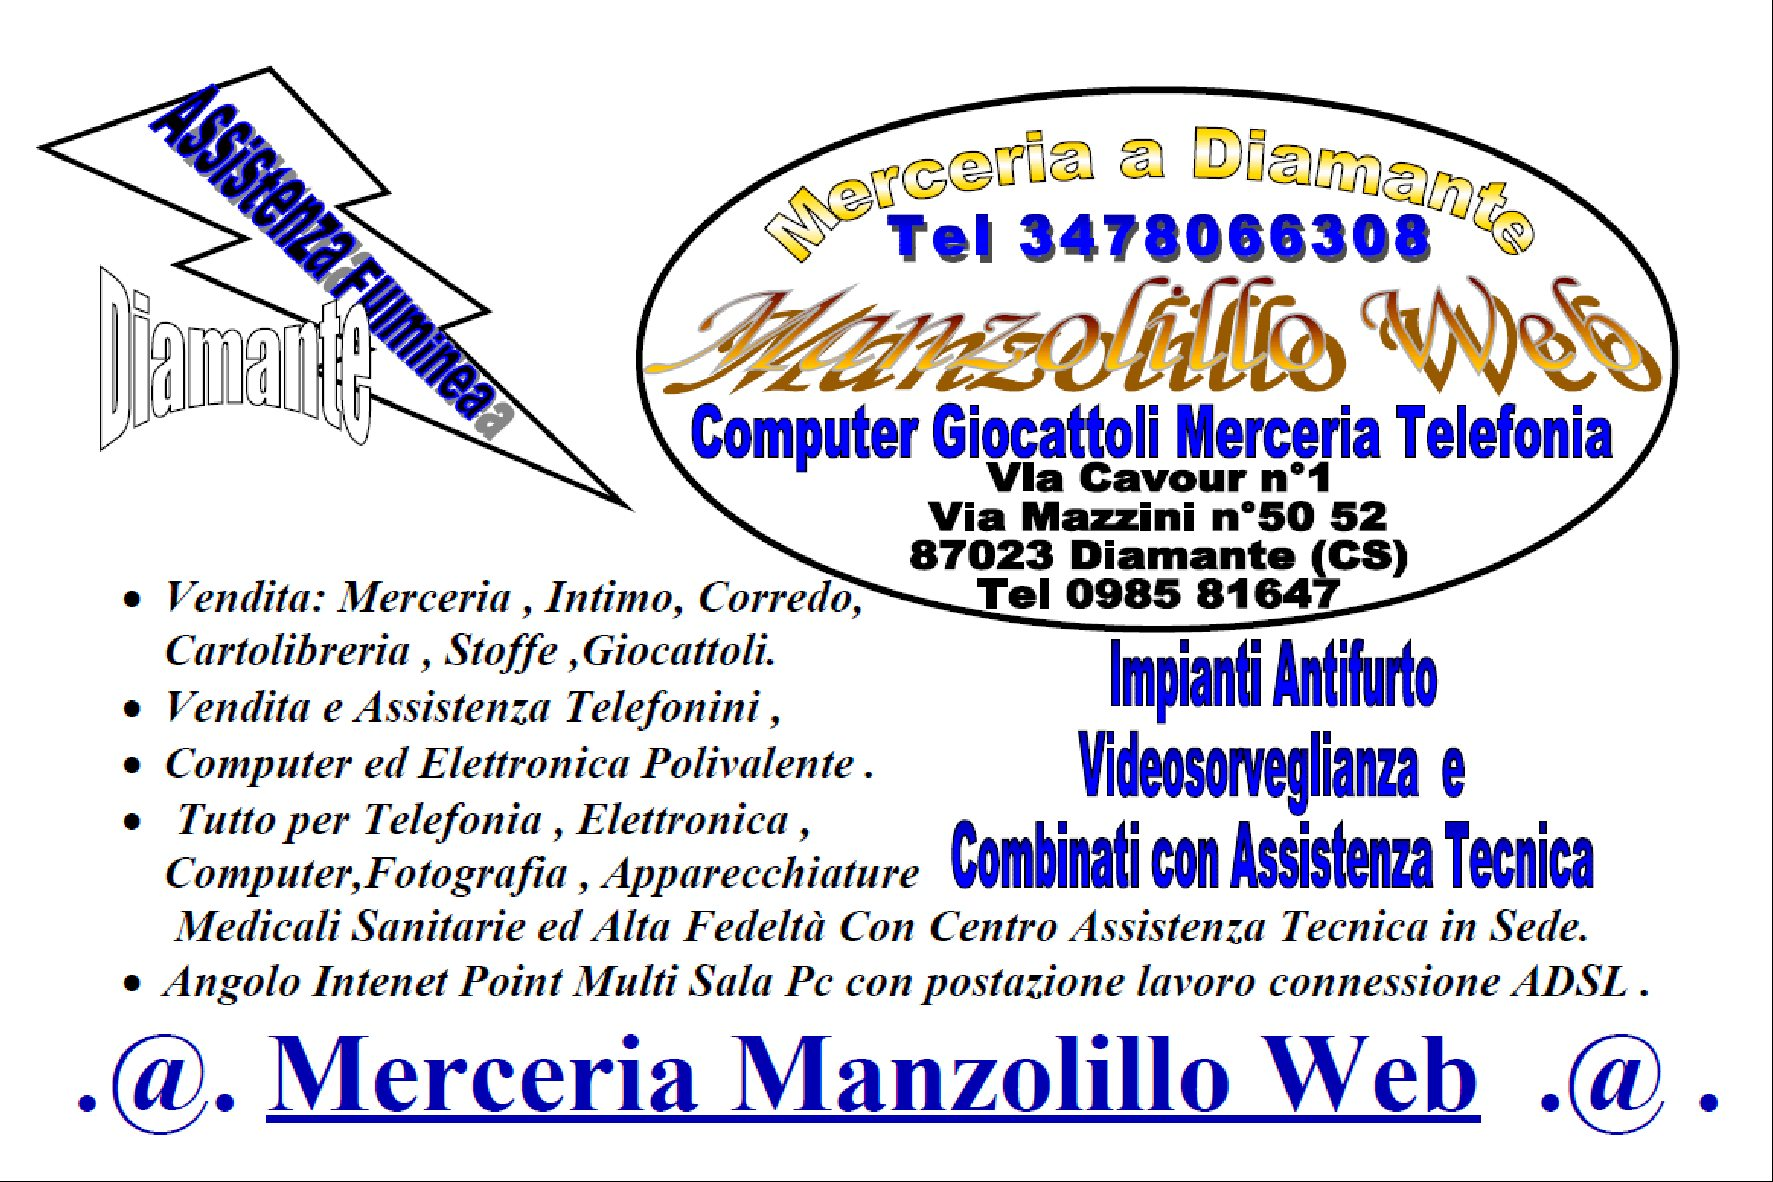 manzolillo_web_-_Copia_-_Copia_(2).jpg